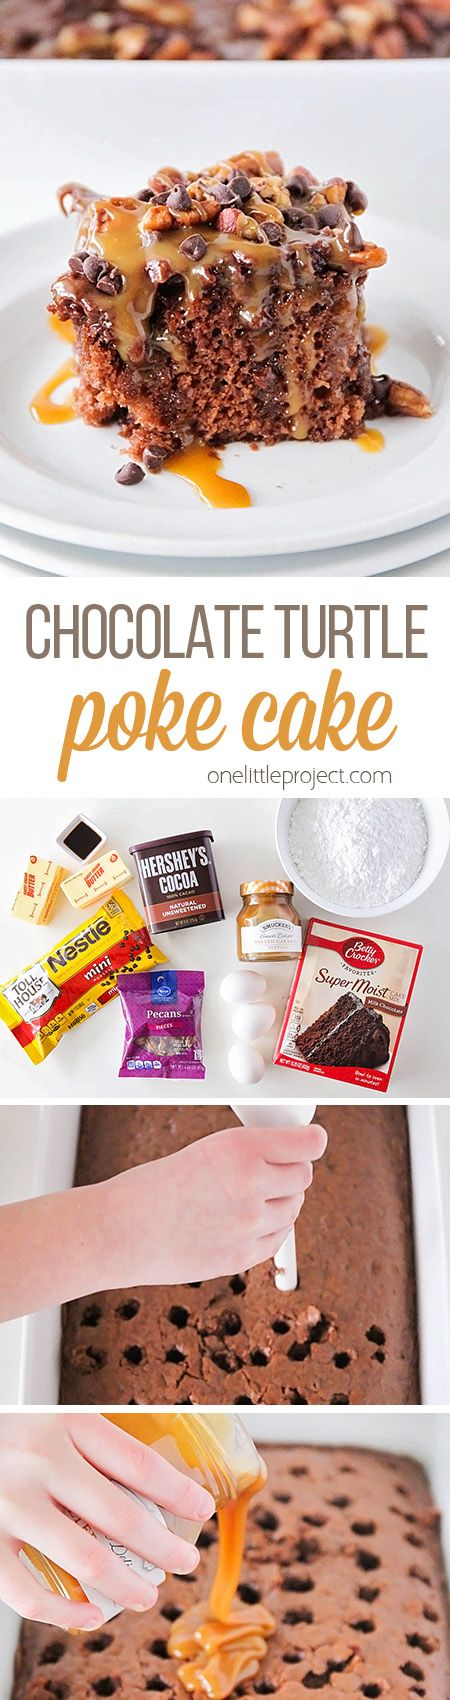 This chocolate turtle poke cake is AMAZING! Delicious and ooey-gooey just loaded with caramel, pecans, and chocolate chips. So yummy and so easy to make!